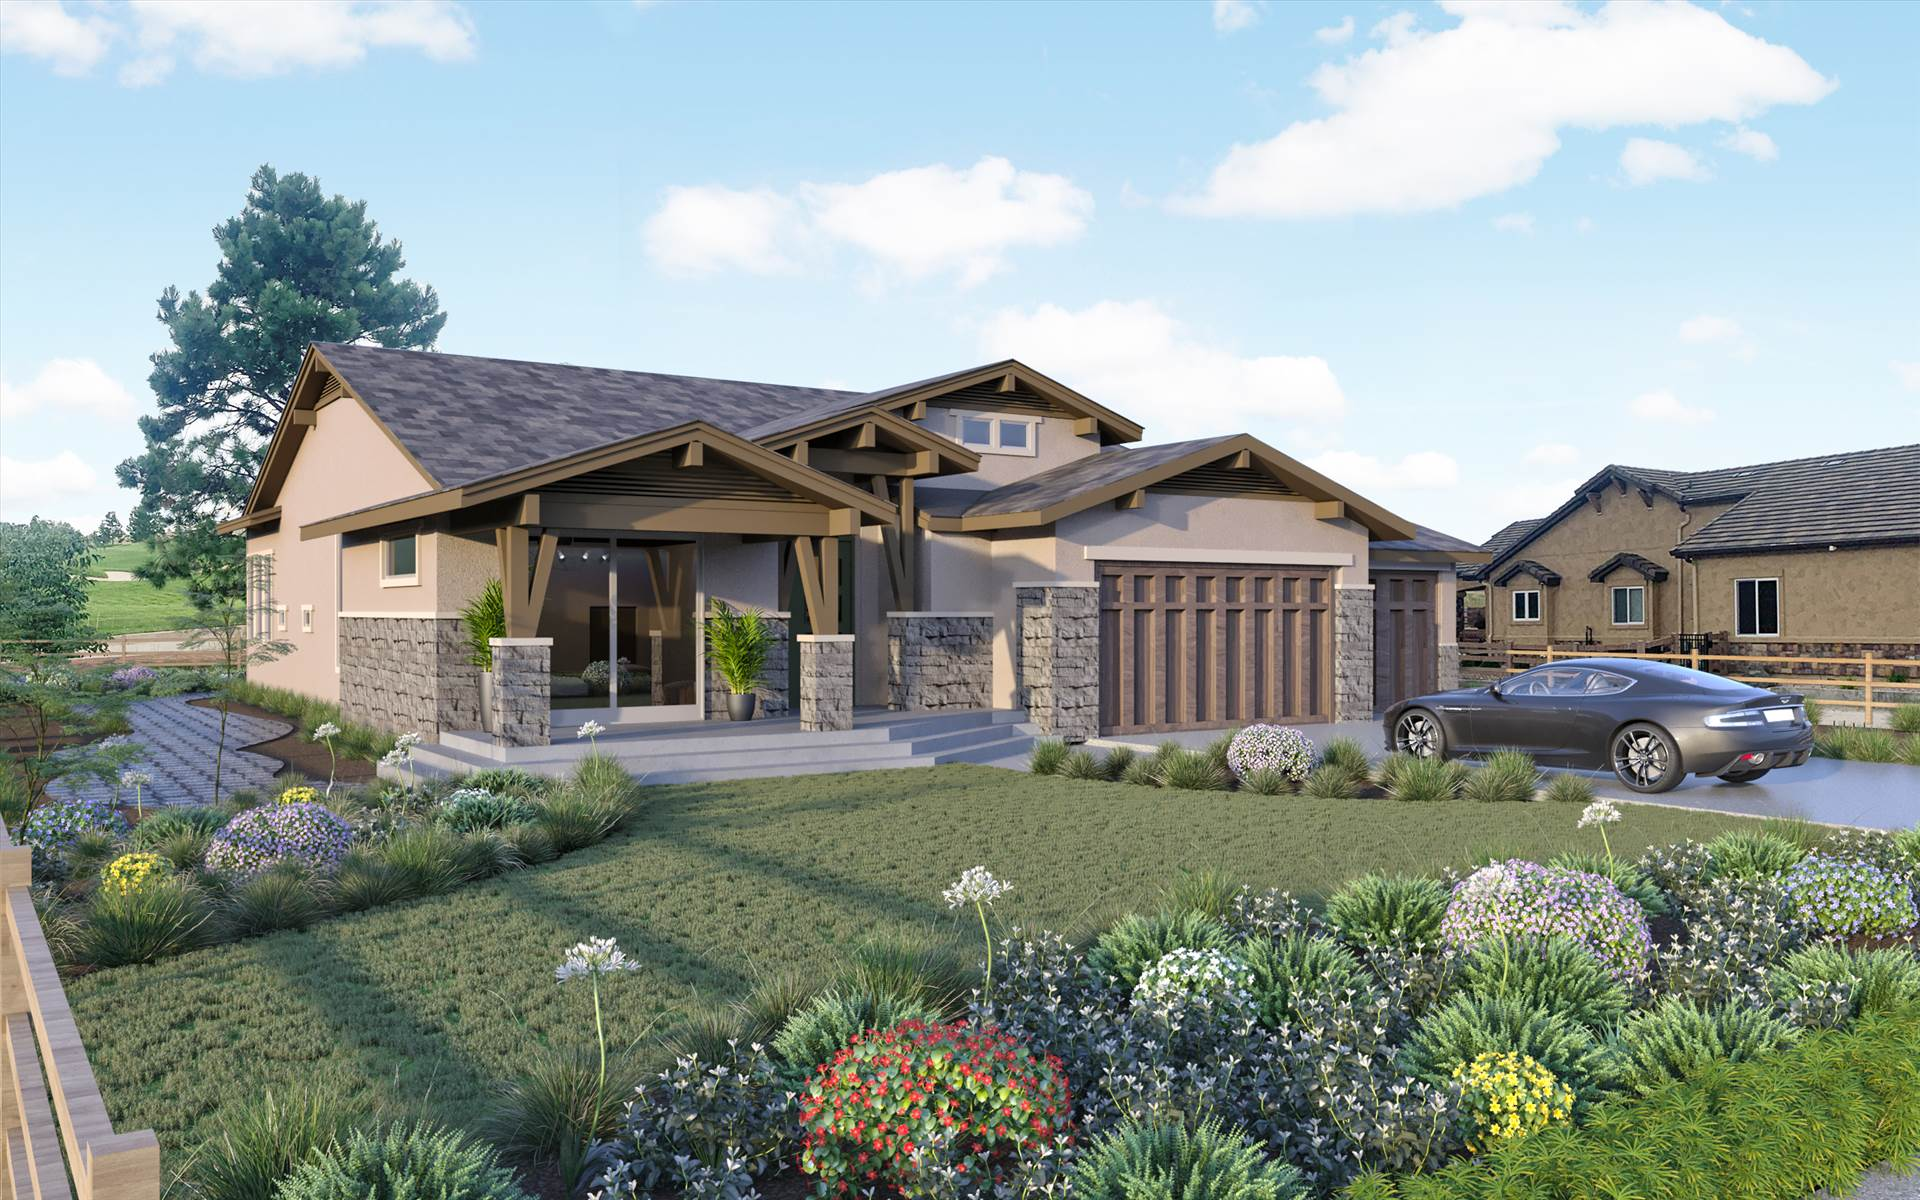 3D House Rendering Services Aurora Colorado We have been doing exterior renders for all demographics and clientele across the world. Primarily used for marketing purposes and client meetings.  by JMSDCONSULTANT